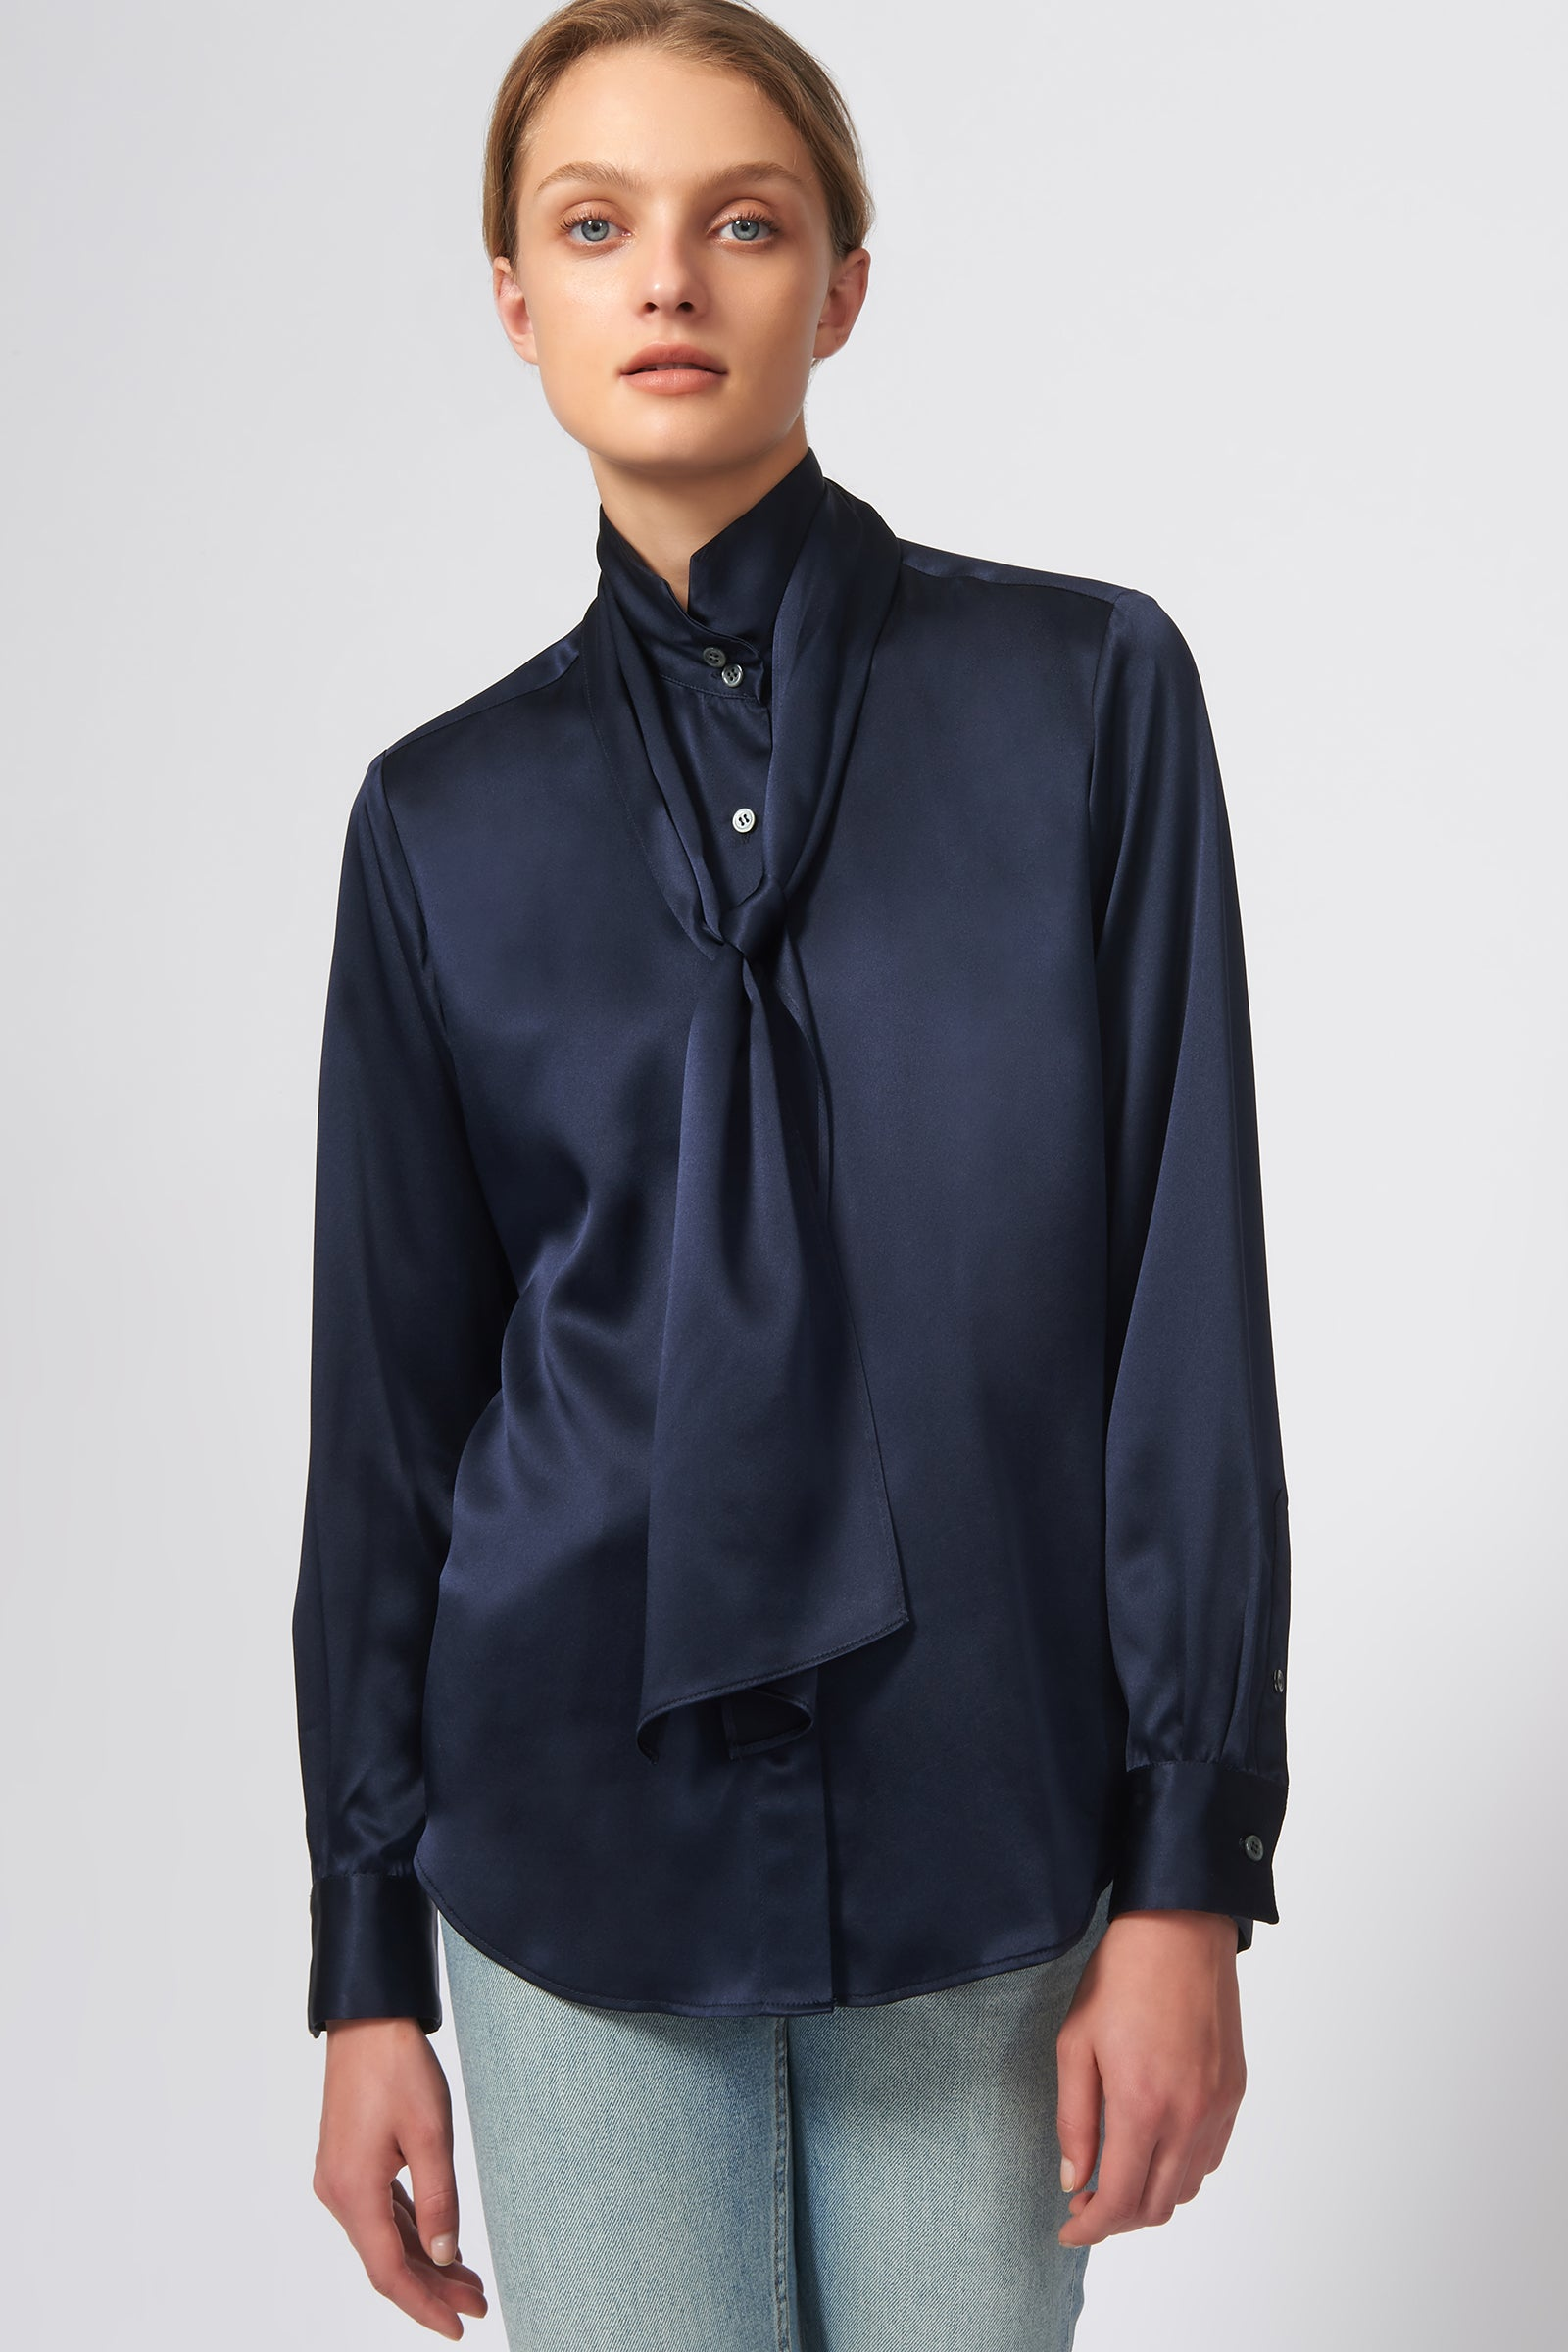 Kal Rieman Scarf Tie Blouse in Navy on Model Front View